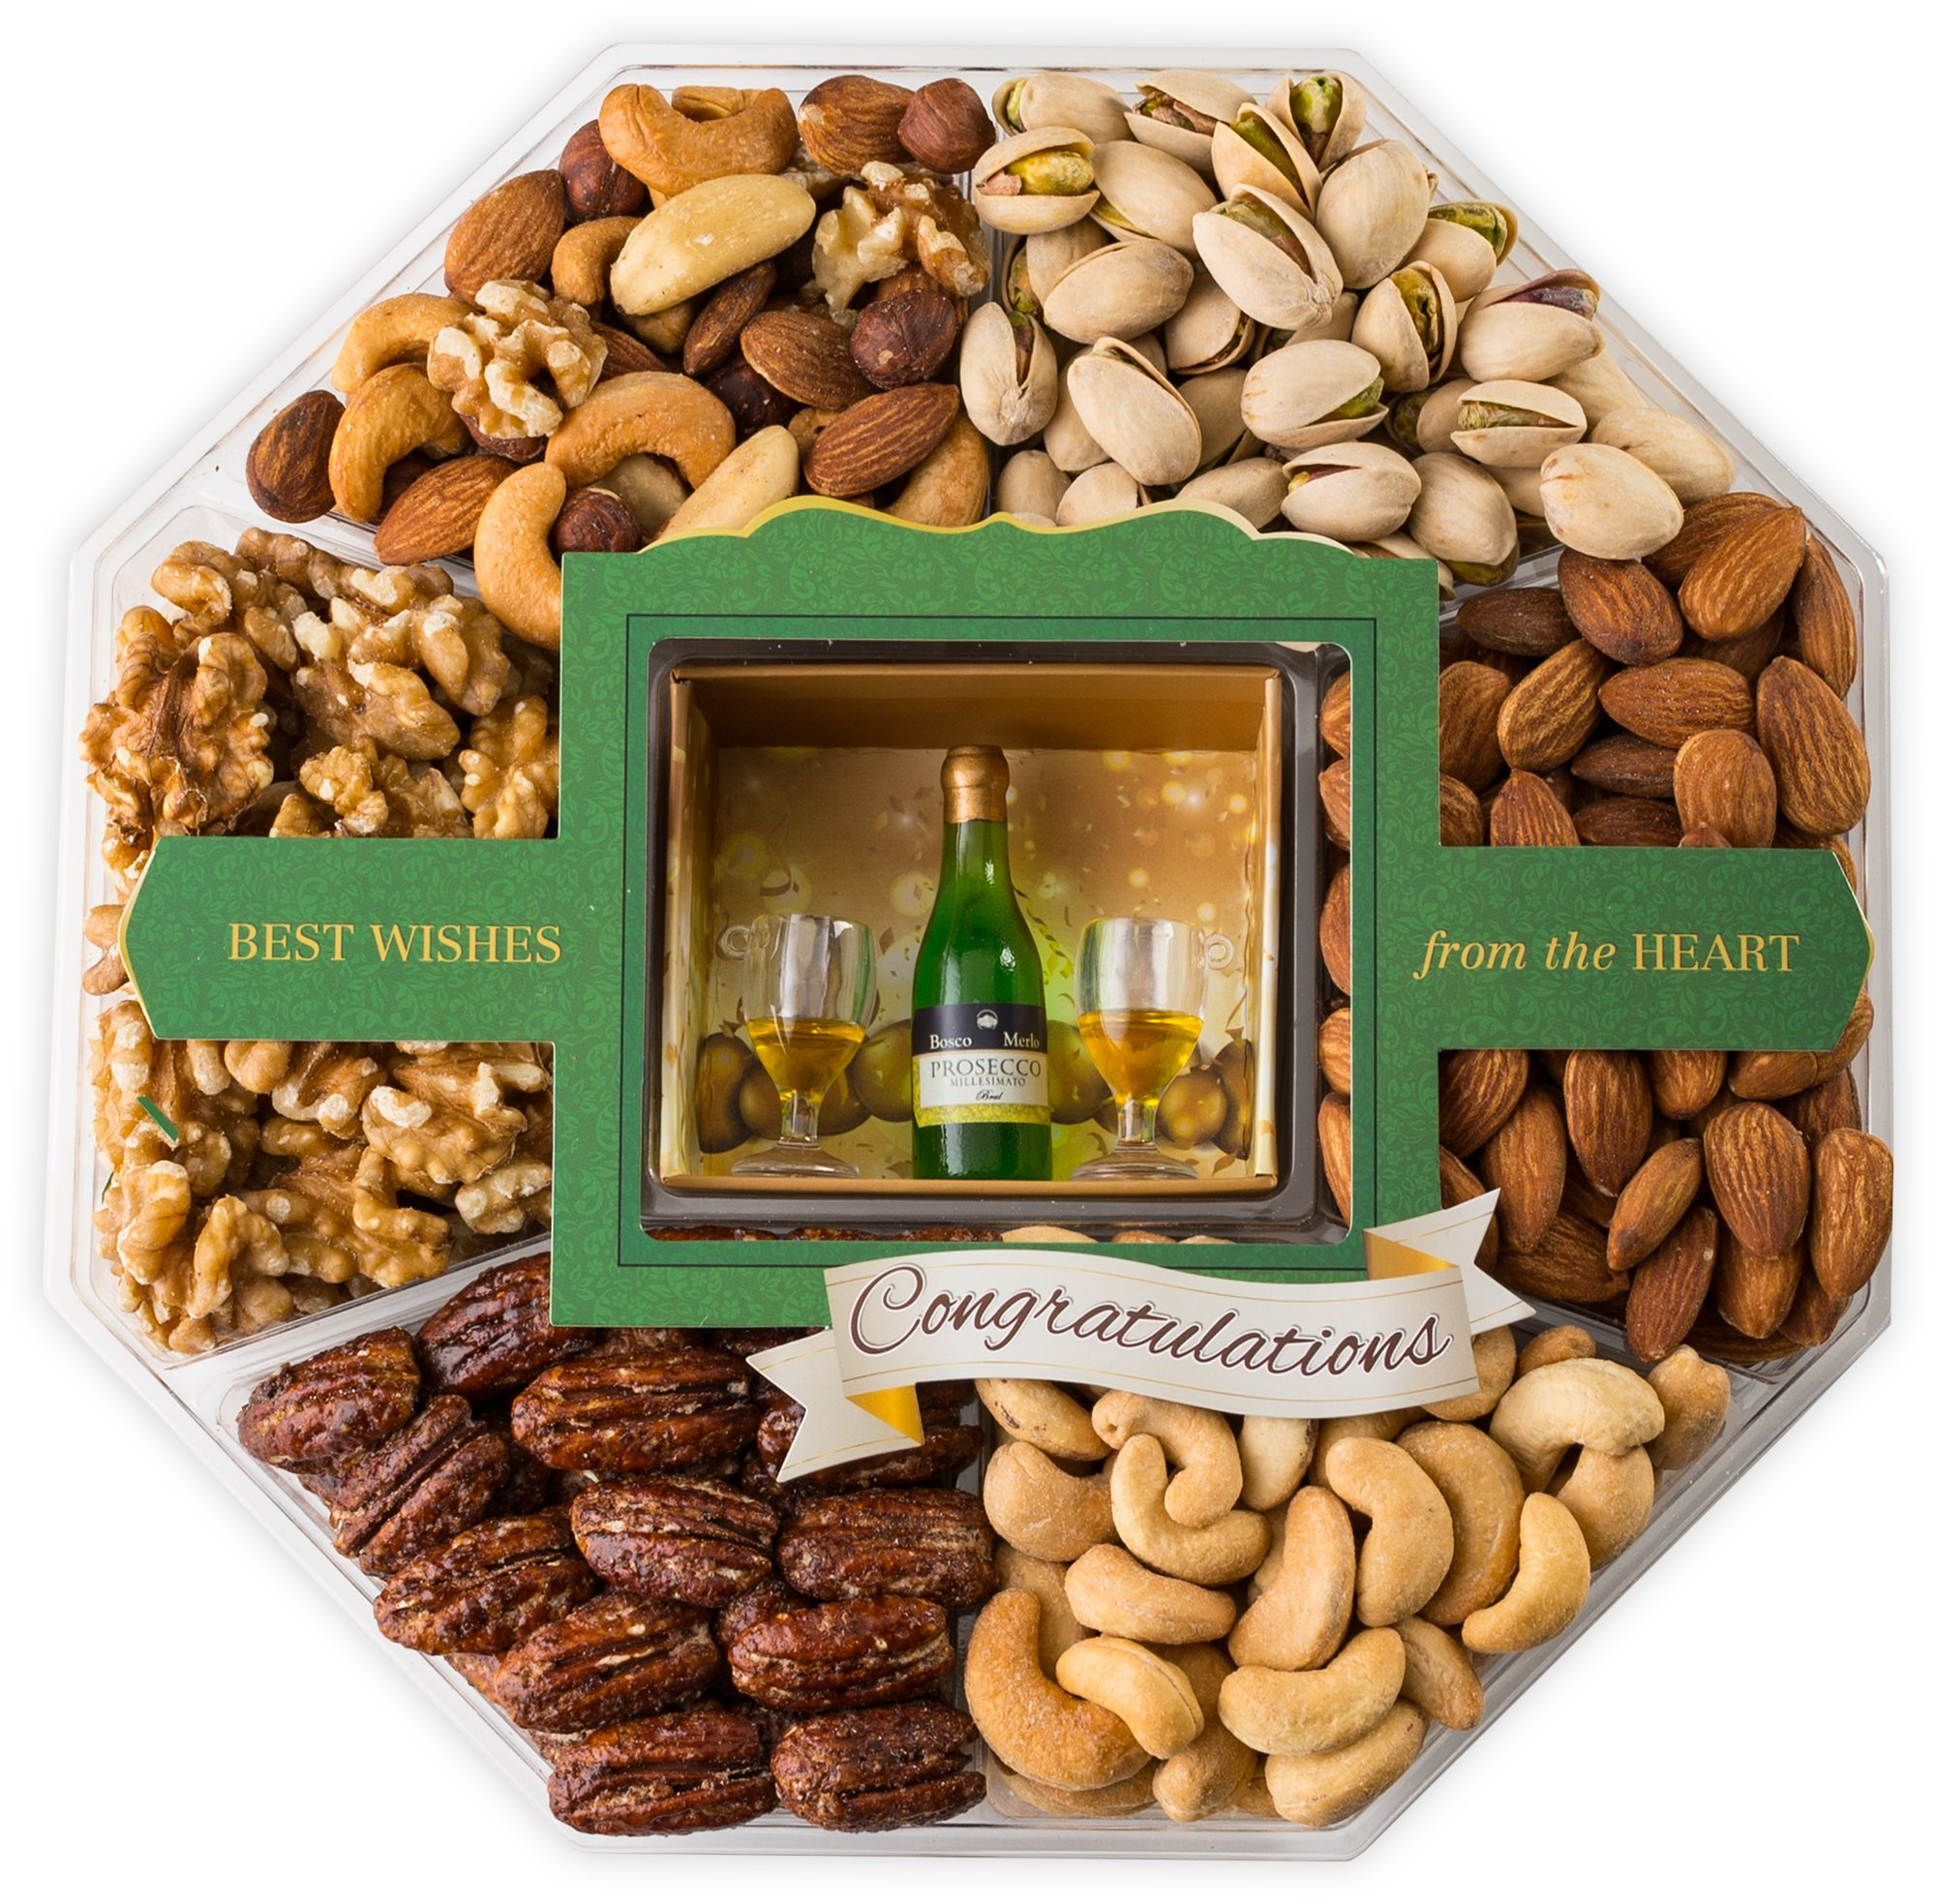 LARGE 6 Sectioned Congratulations Gourmet Food Gift Basket – Contains a Fine Assortment of Fresh Almonds, Pistachios, Cashews and More in an Stylish 3D Gift Container. Great Gift Idea! (Mini Wishes)